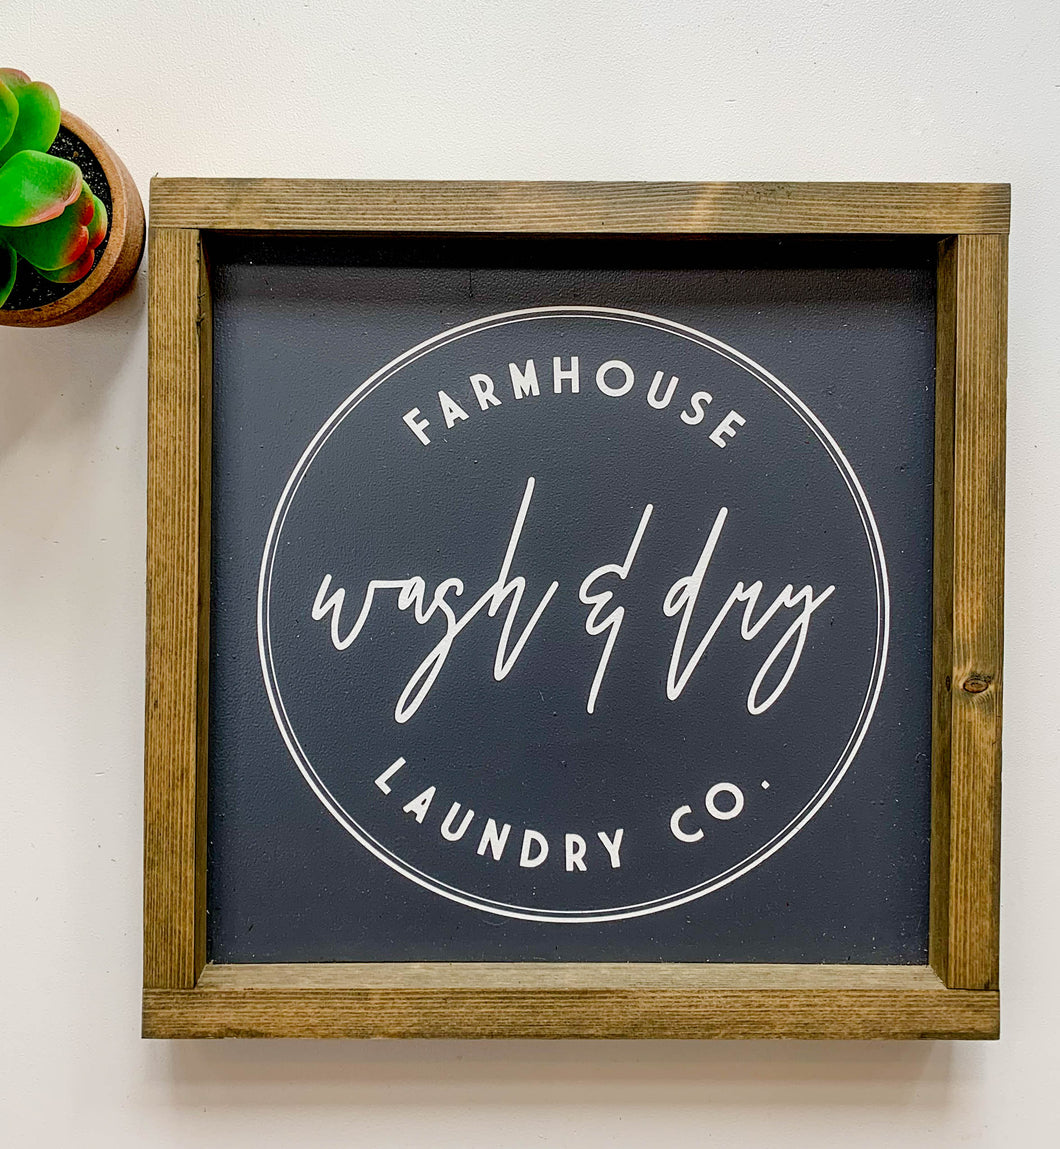 Farmhouse Wash & Dry Co.